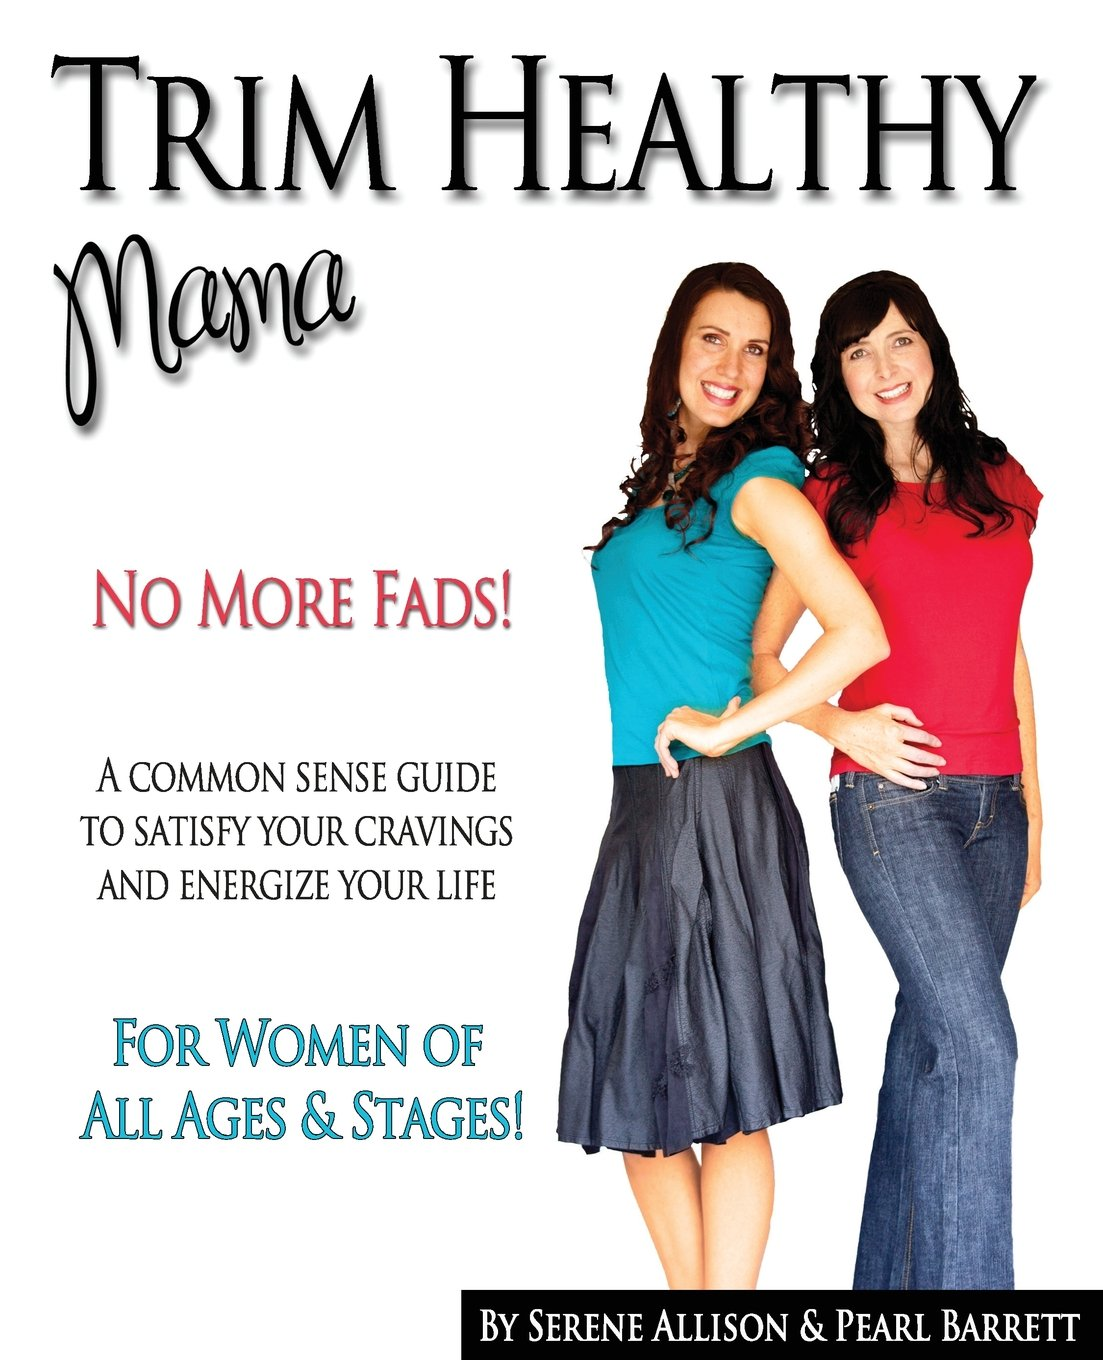 Trim Healthy Mama Pearl Barrett product image